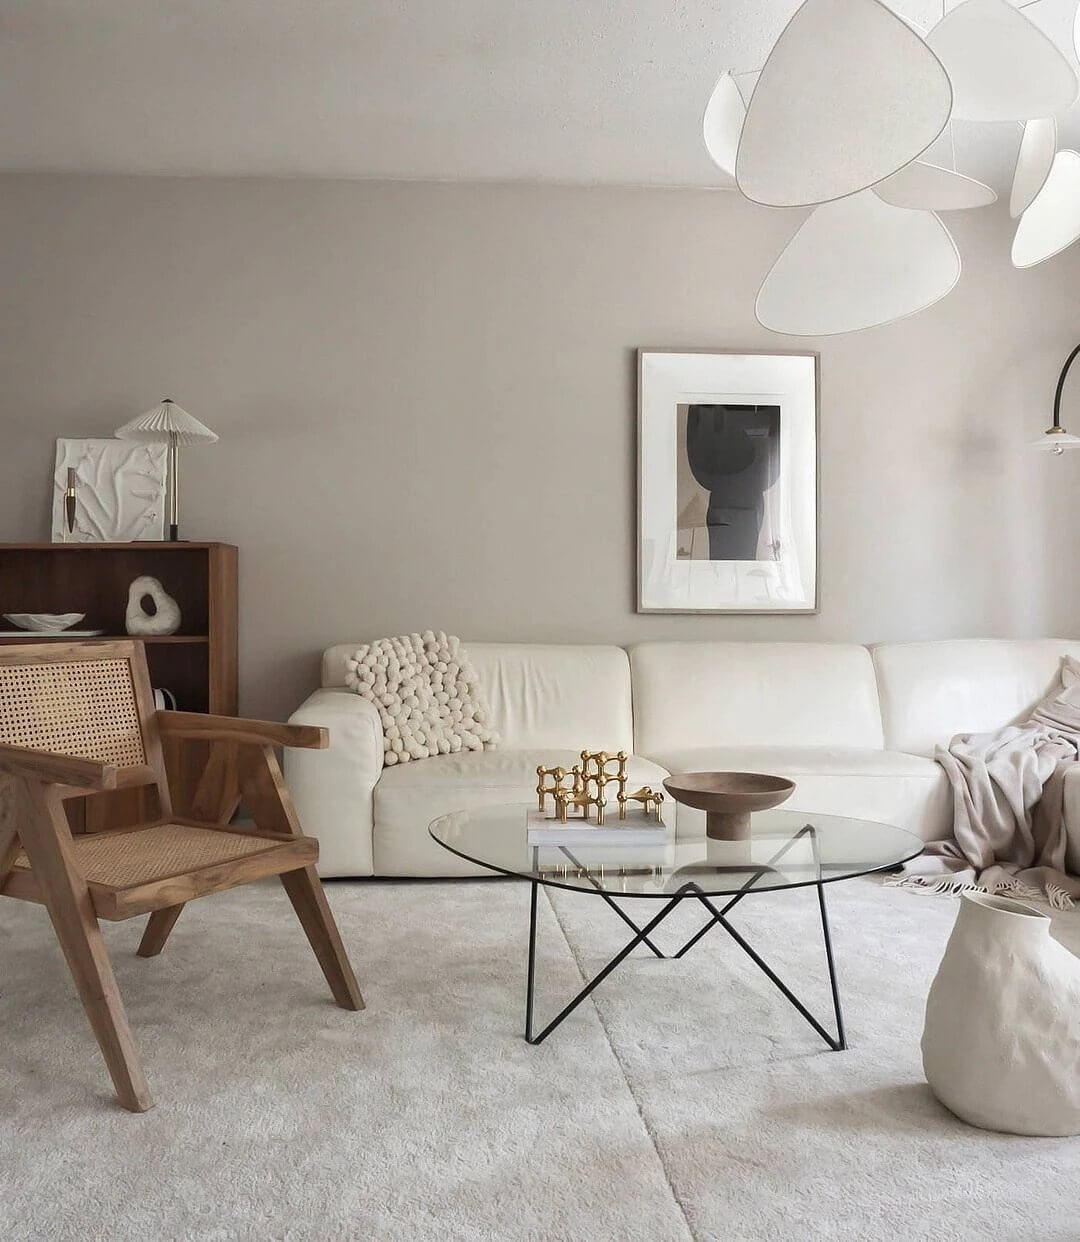 4. Stylish space with natural motives